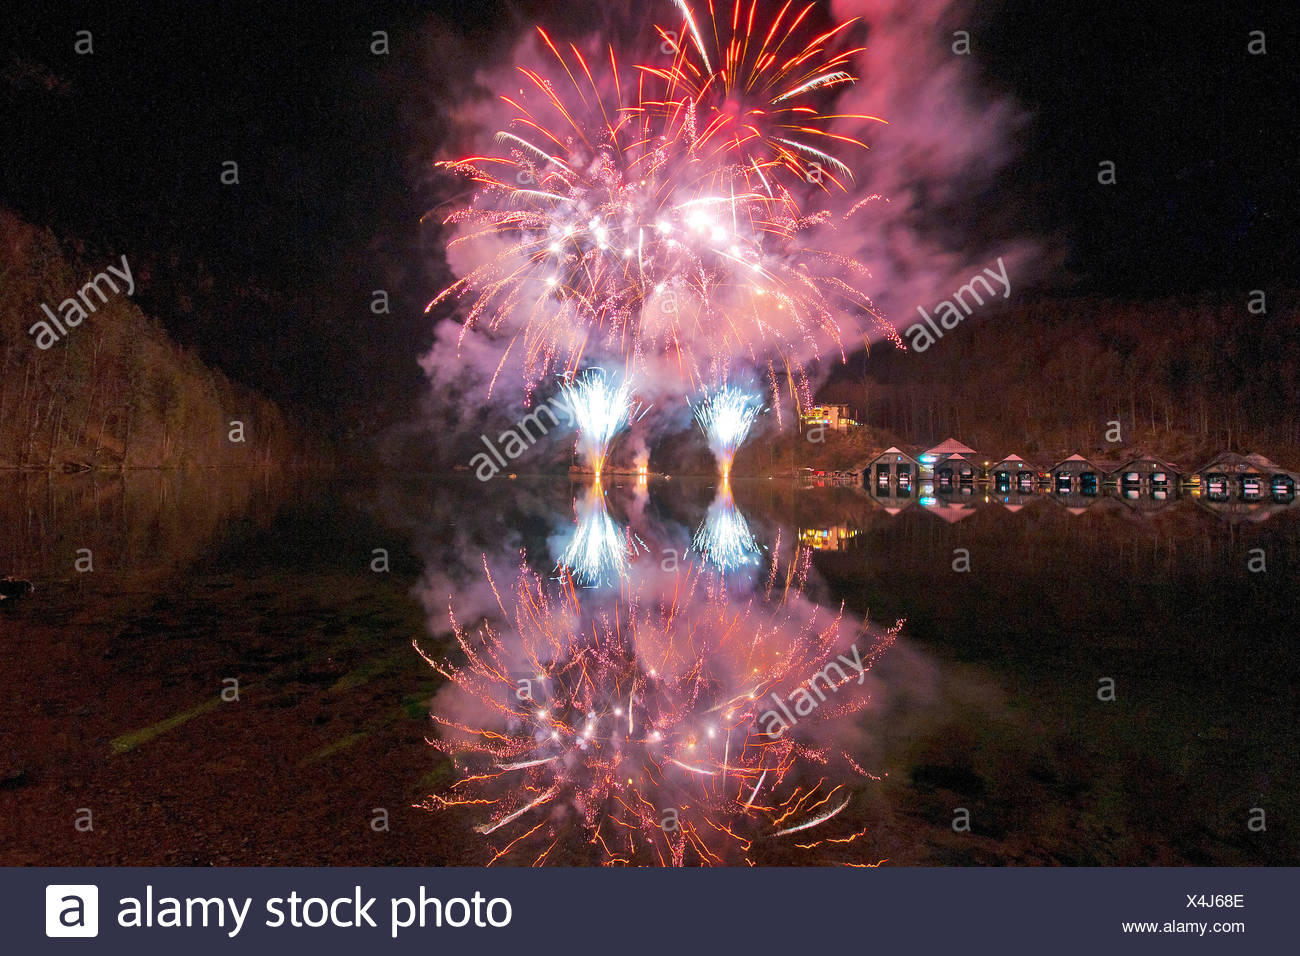 Fires, fireworks, pyrotechnics, rockets, rays, beams, explode, explosion, sky, night, lights, Berchtesgaden, Bavaria, Germany, K - Stock Image